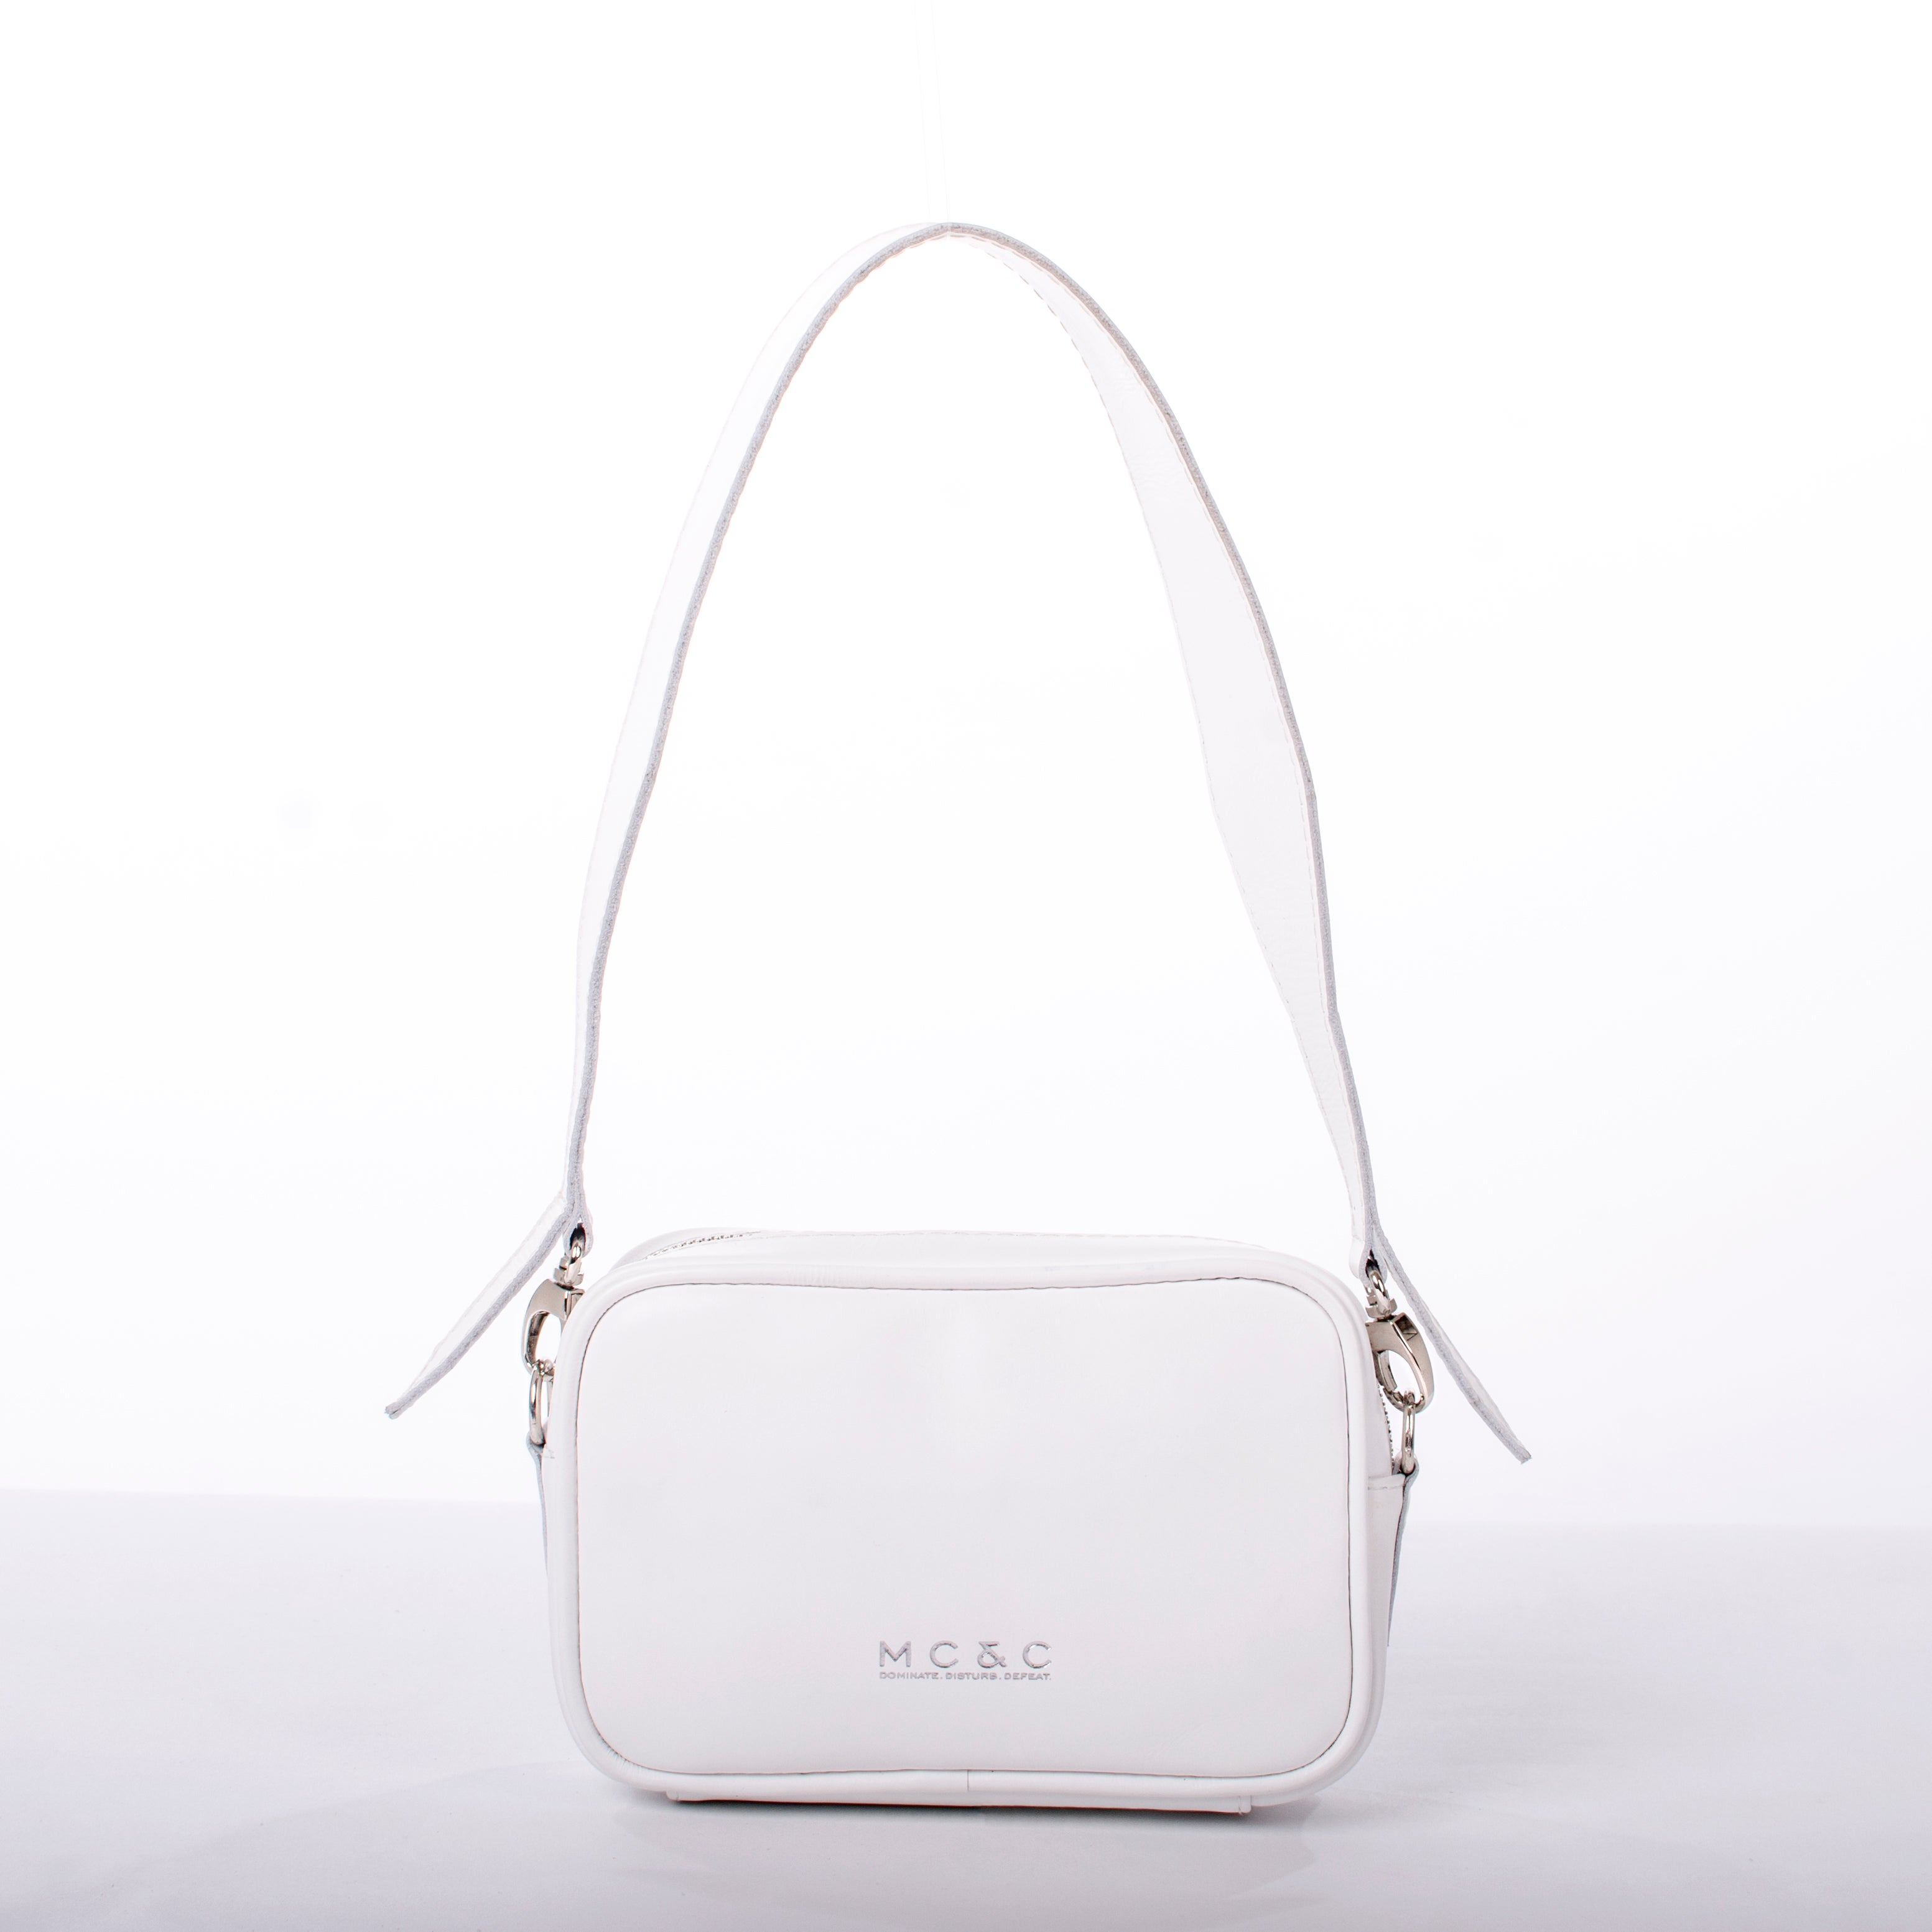 Capsule Mini Structured Shoulder Bag